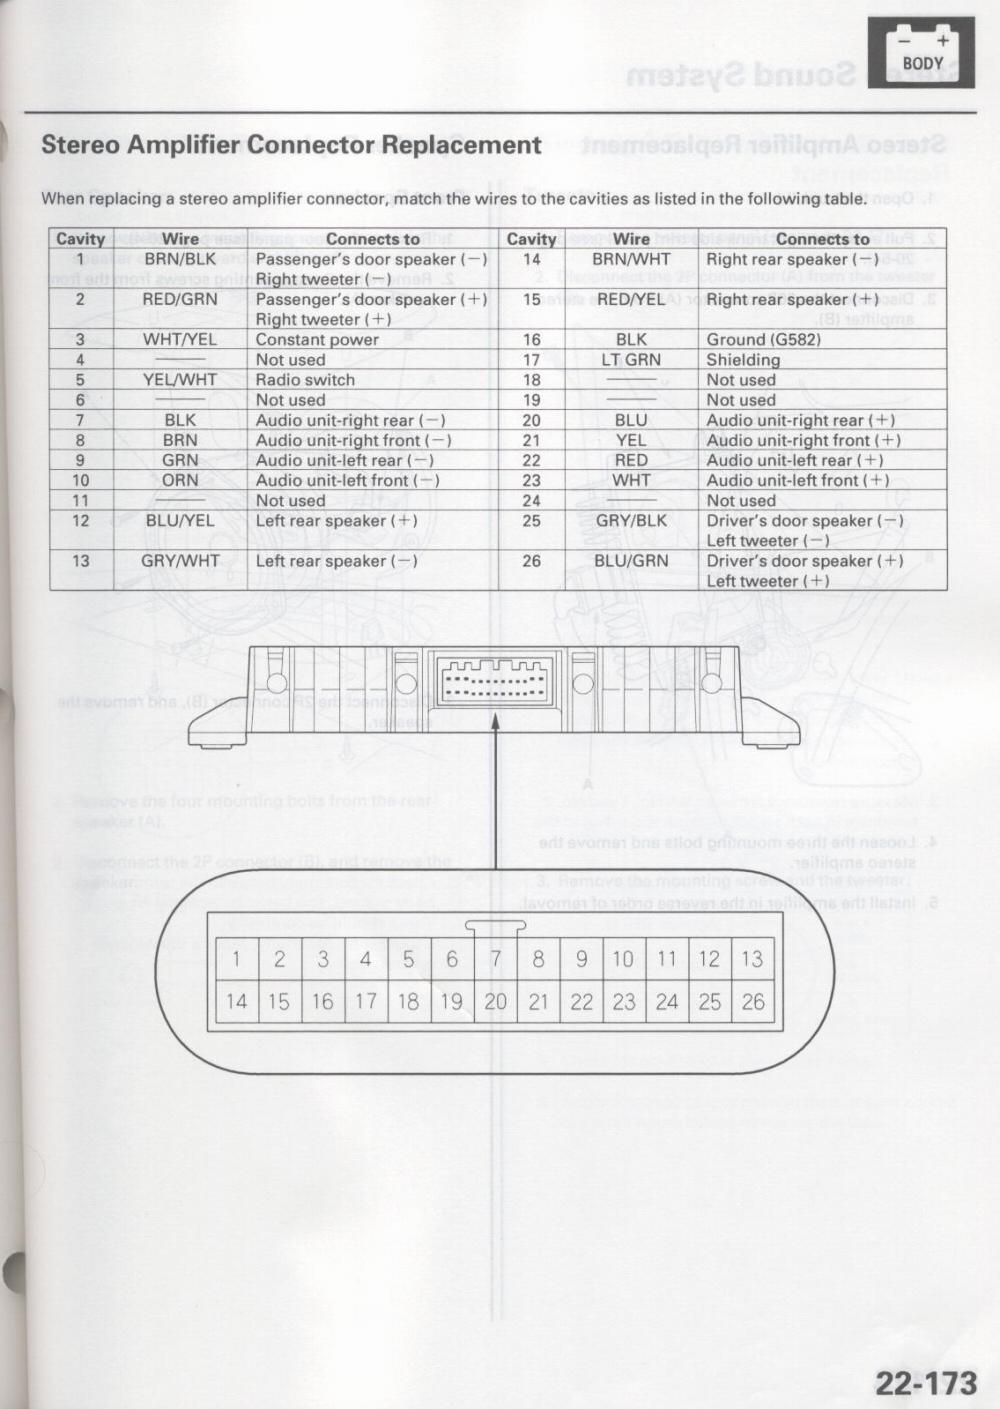 Acura 2002 TL car stereo amplifier wiring diagram harness acura rsx radio wiring diagram 2007 acura wiring \u2022 wiring diagrams 2002 honda civic radio wiring diagram at mifinder.co